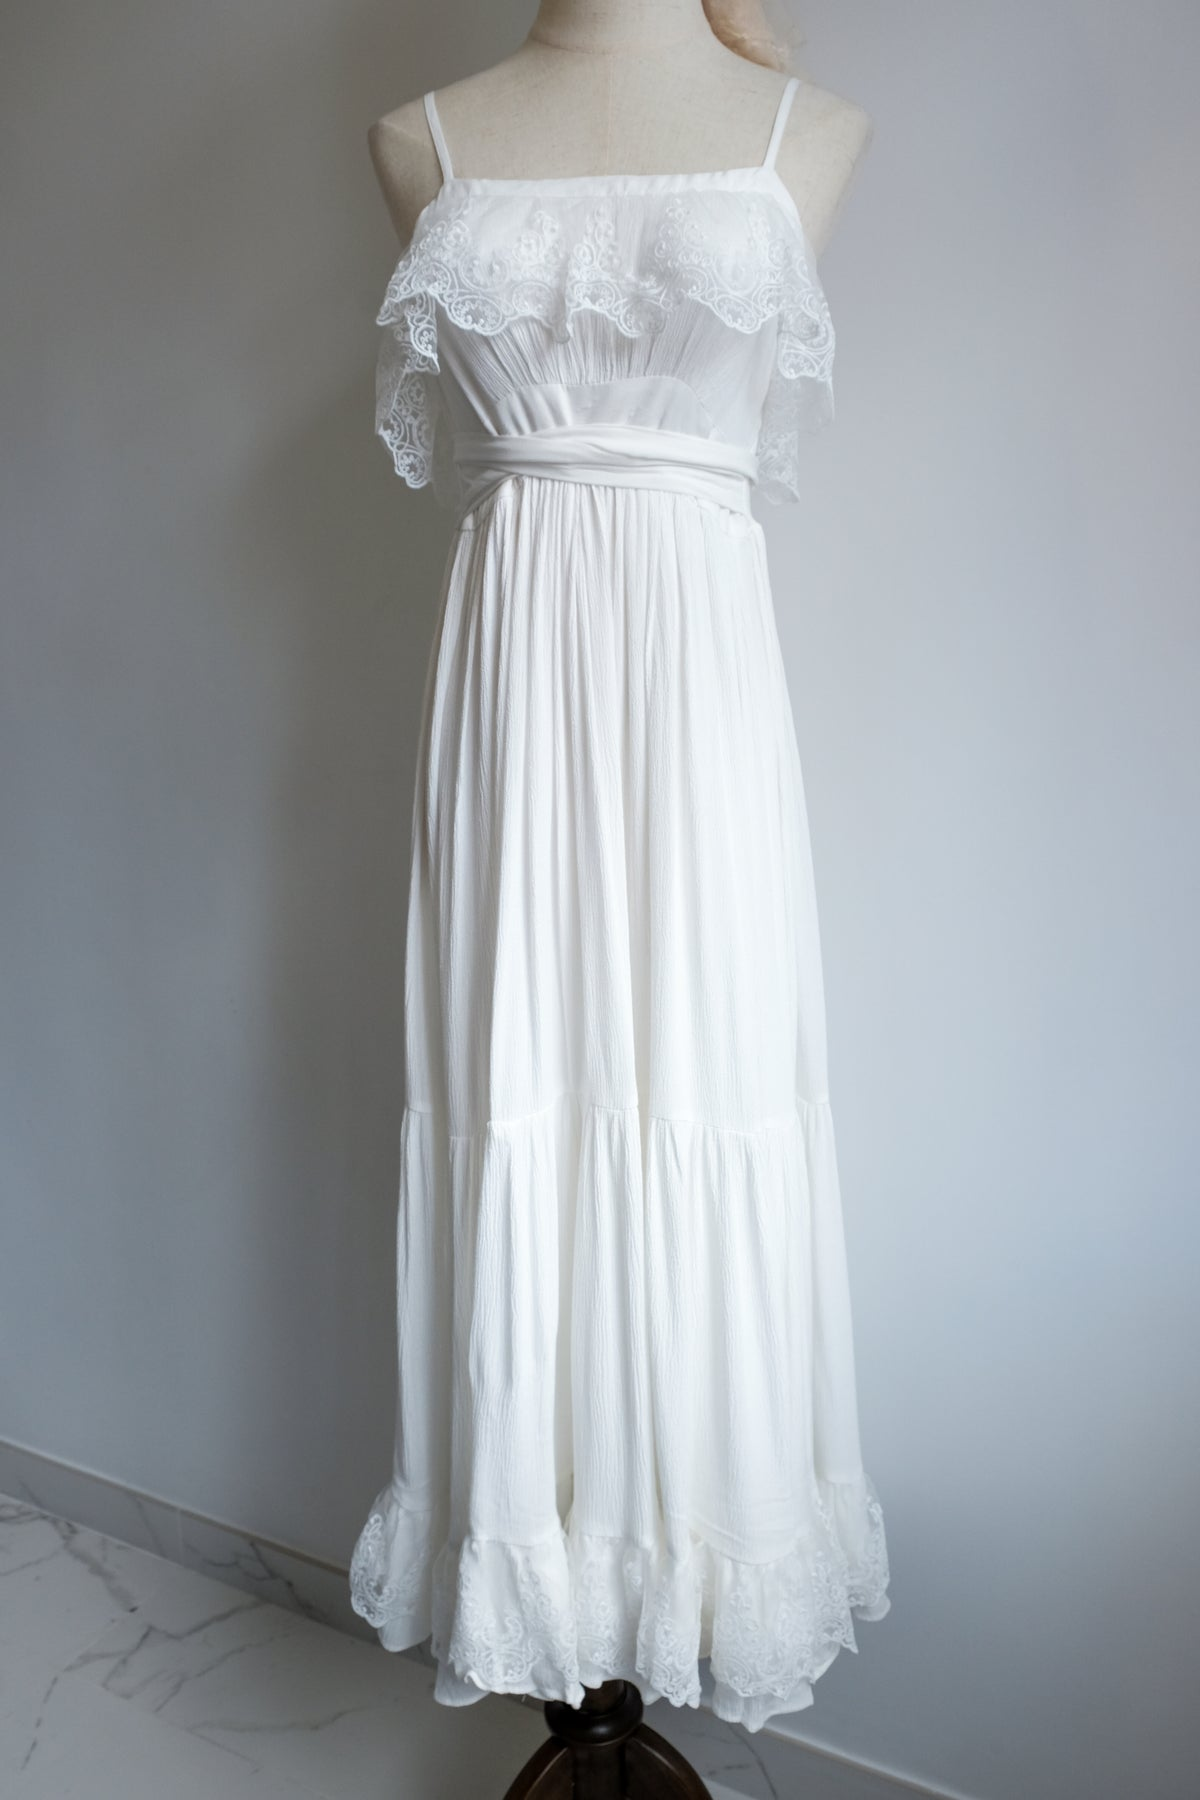 Image of SAMPLE SALE - Unreleased White Dress 011